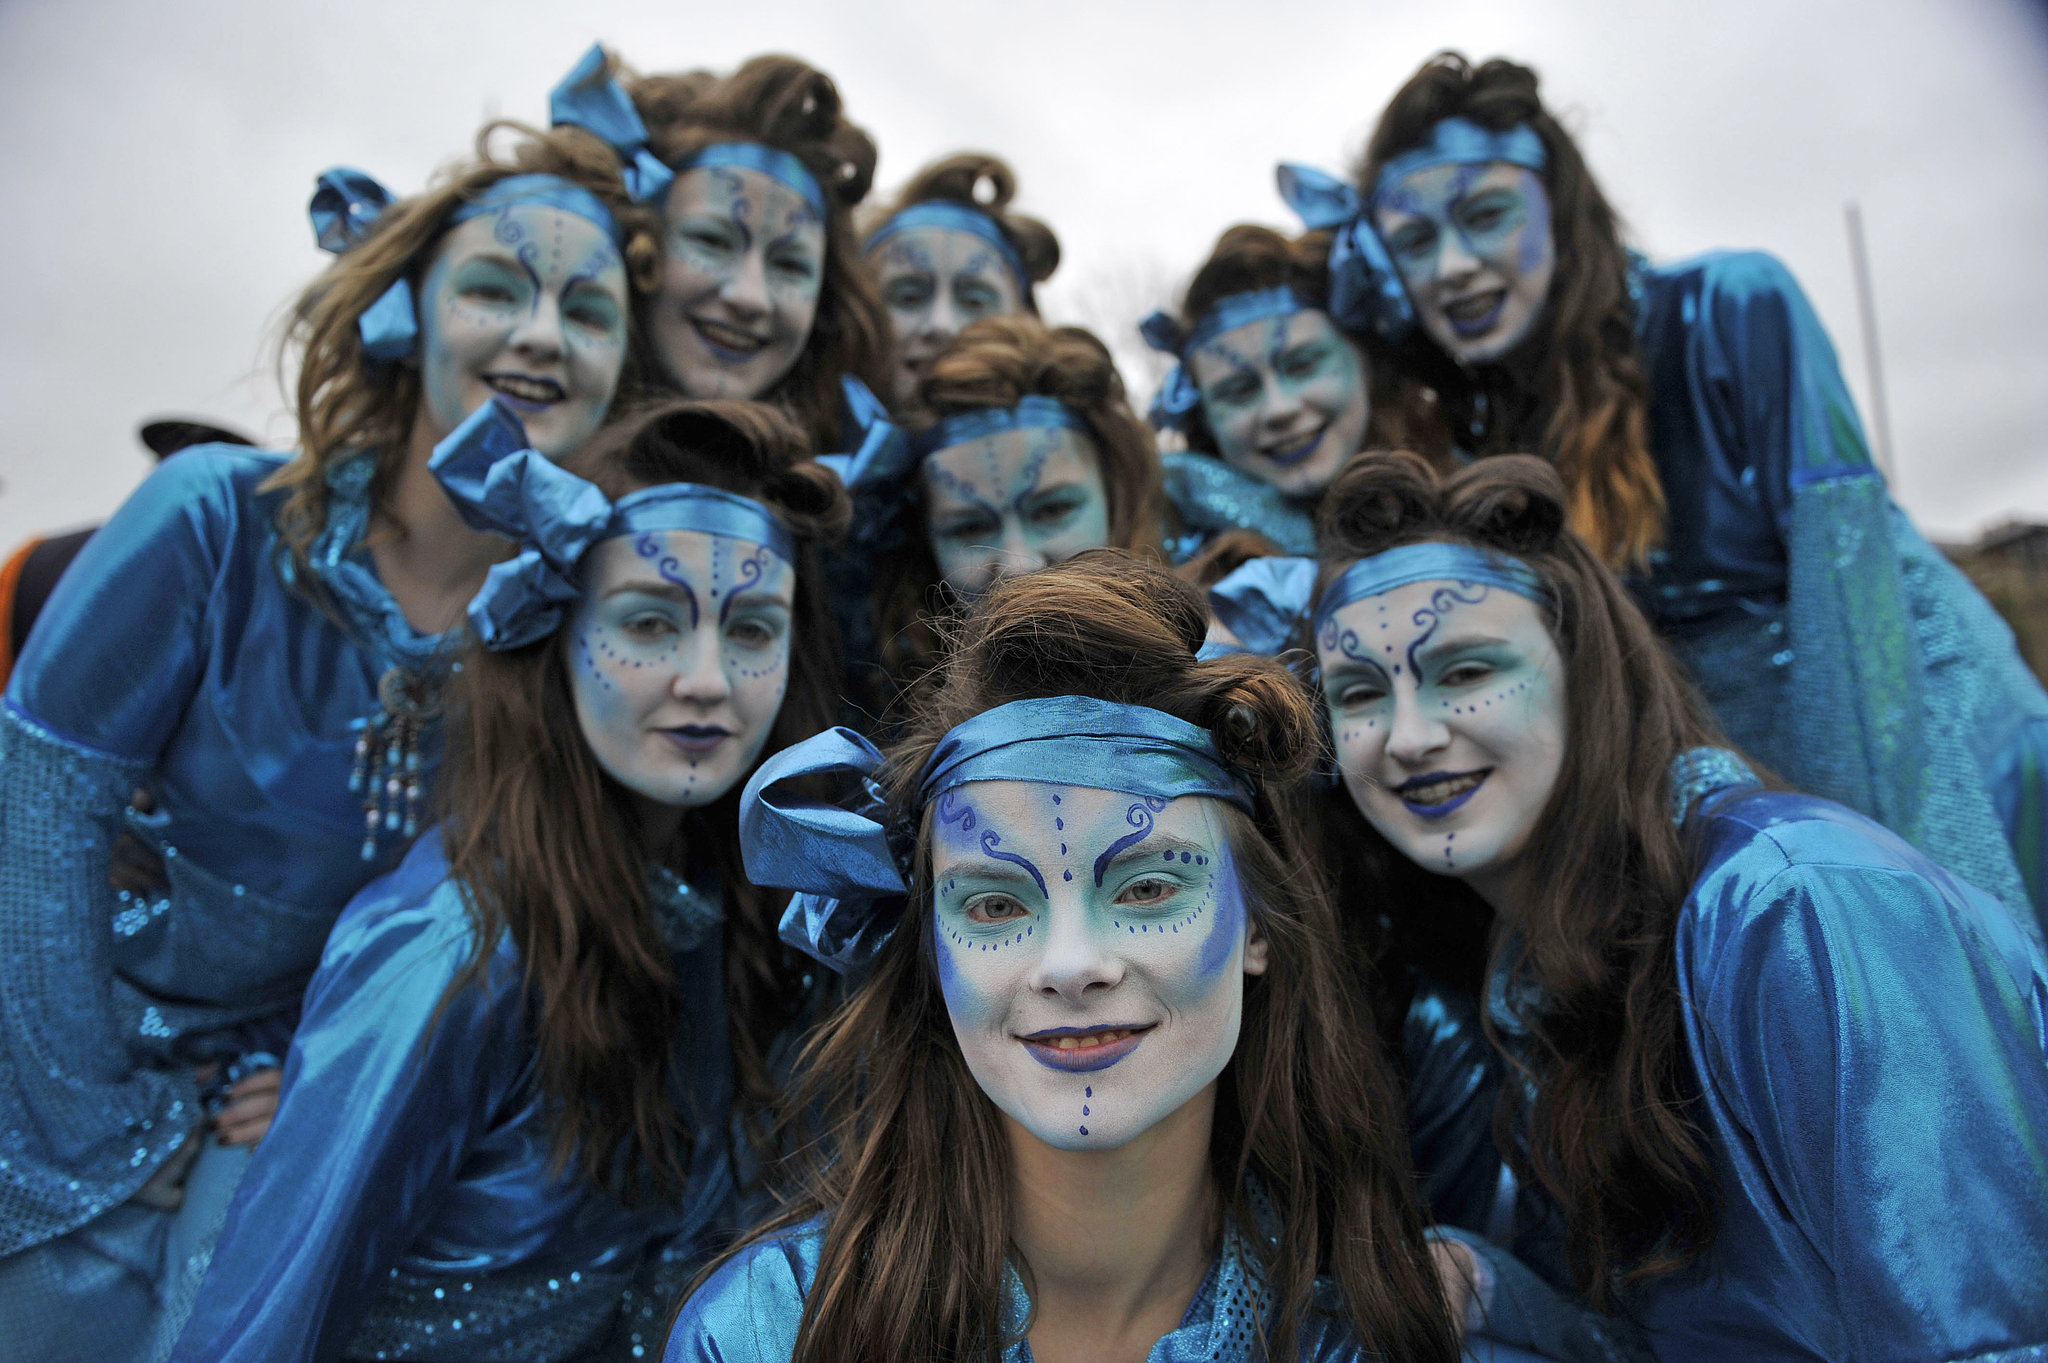 Dublin's traditional parade brought out plenty of costumed groups.